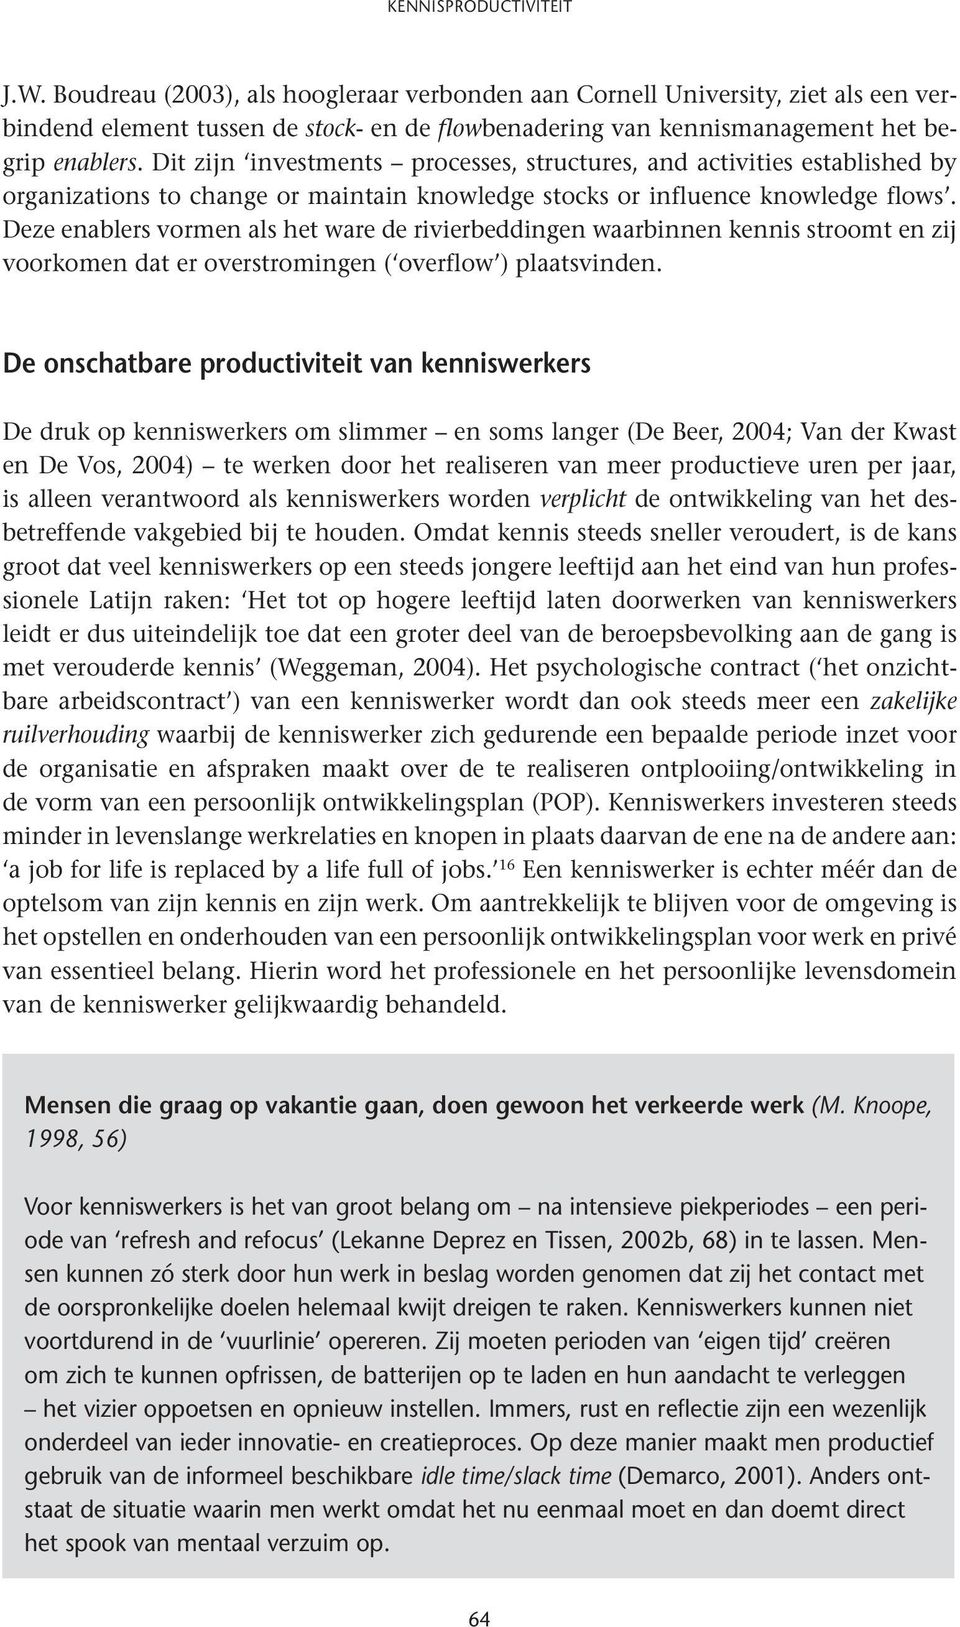 Dit zijn investments processes, structures, and activities established by organizations to change or maintain knowledge stocks or influence knowledge flows.